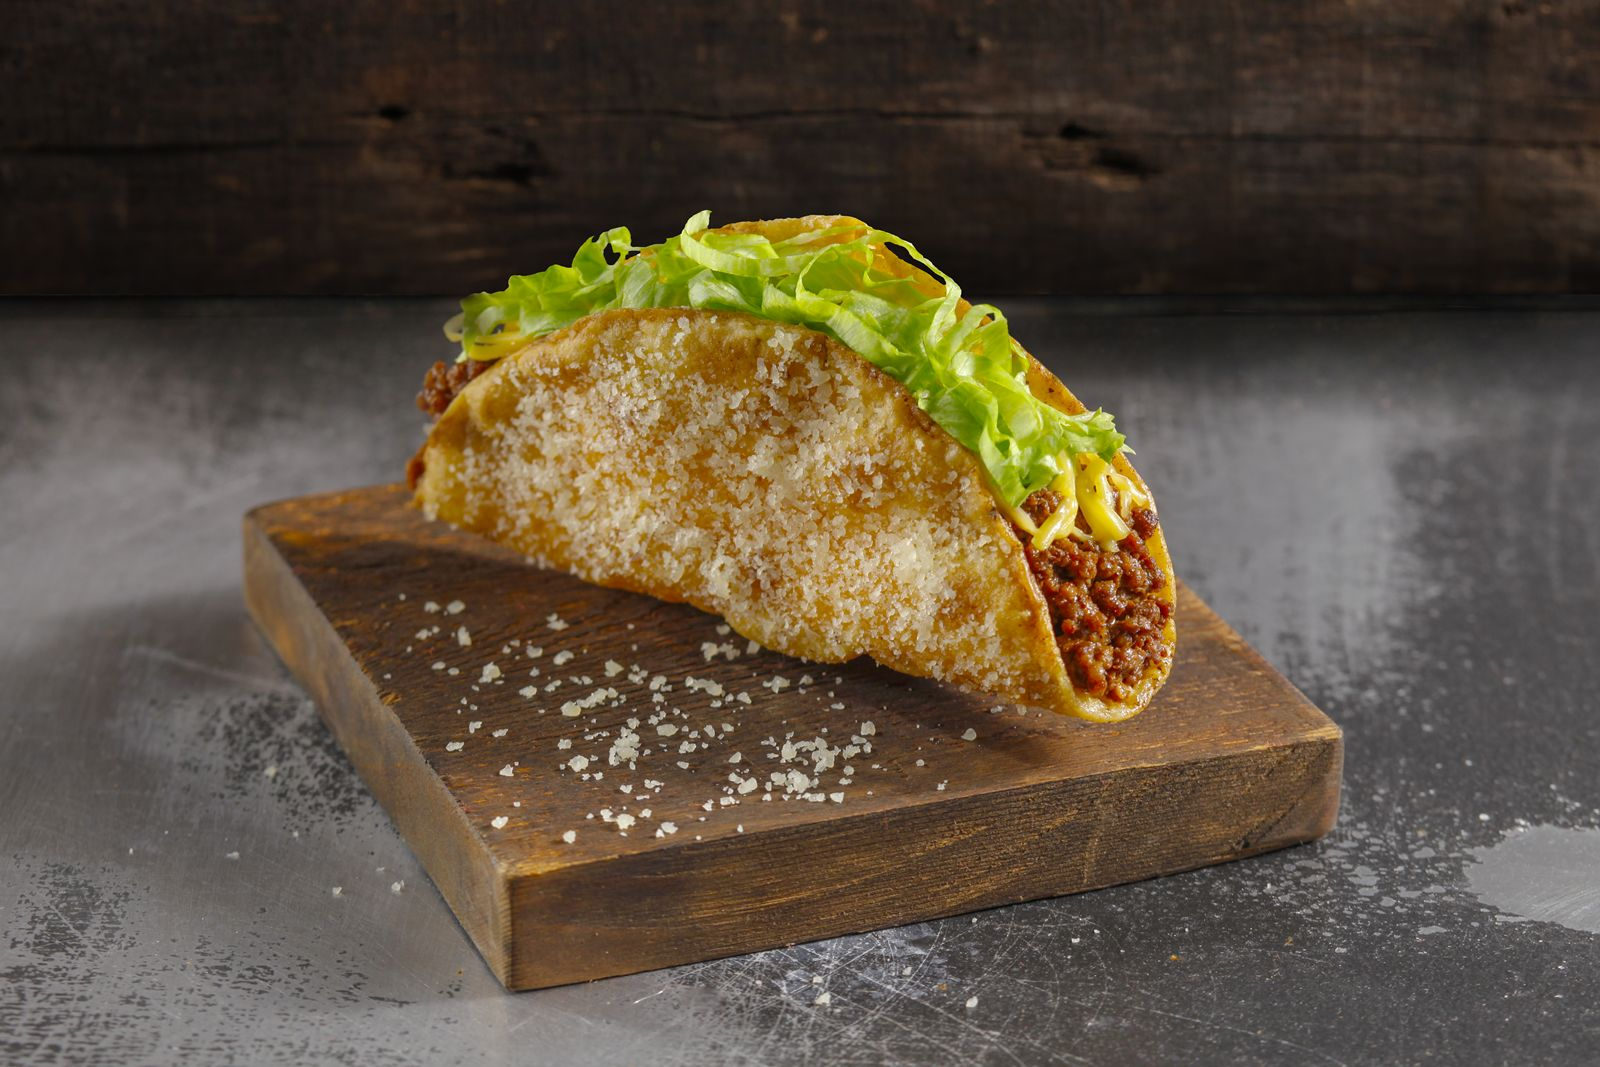 Jimboy's Tacos, home of the Original American Taco, will celebrate the Grand Opening of its fourth Orange County location at 5643 Alton Parkway in Irvine, CA on Tuesday, November 13 by giving away a free Original Ground Beef Taco with any in-store purchase all day long.